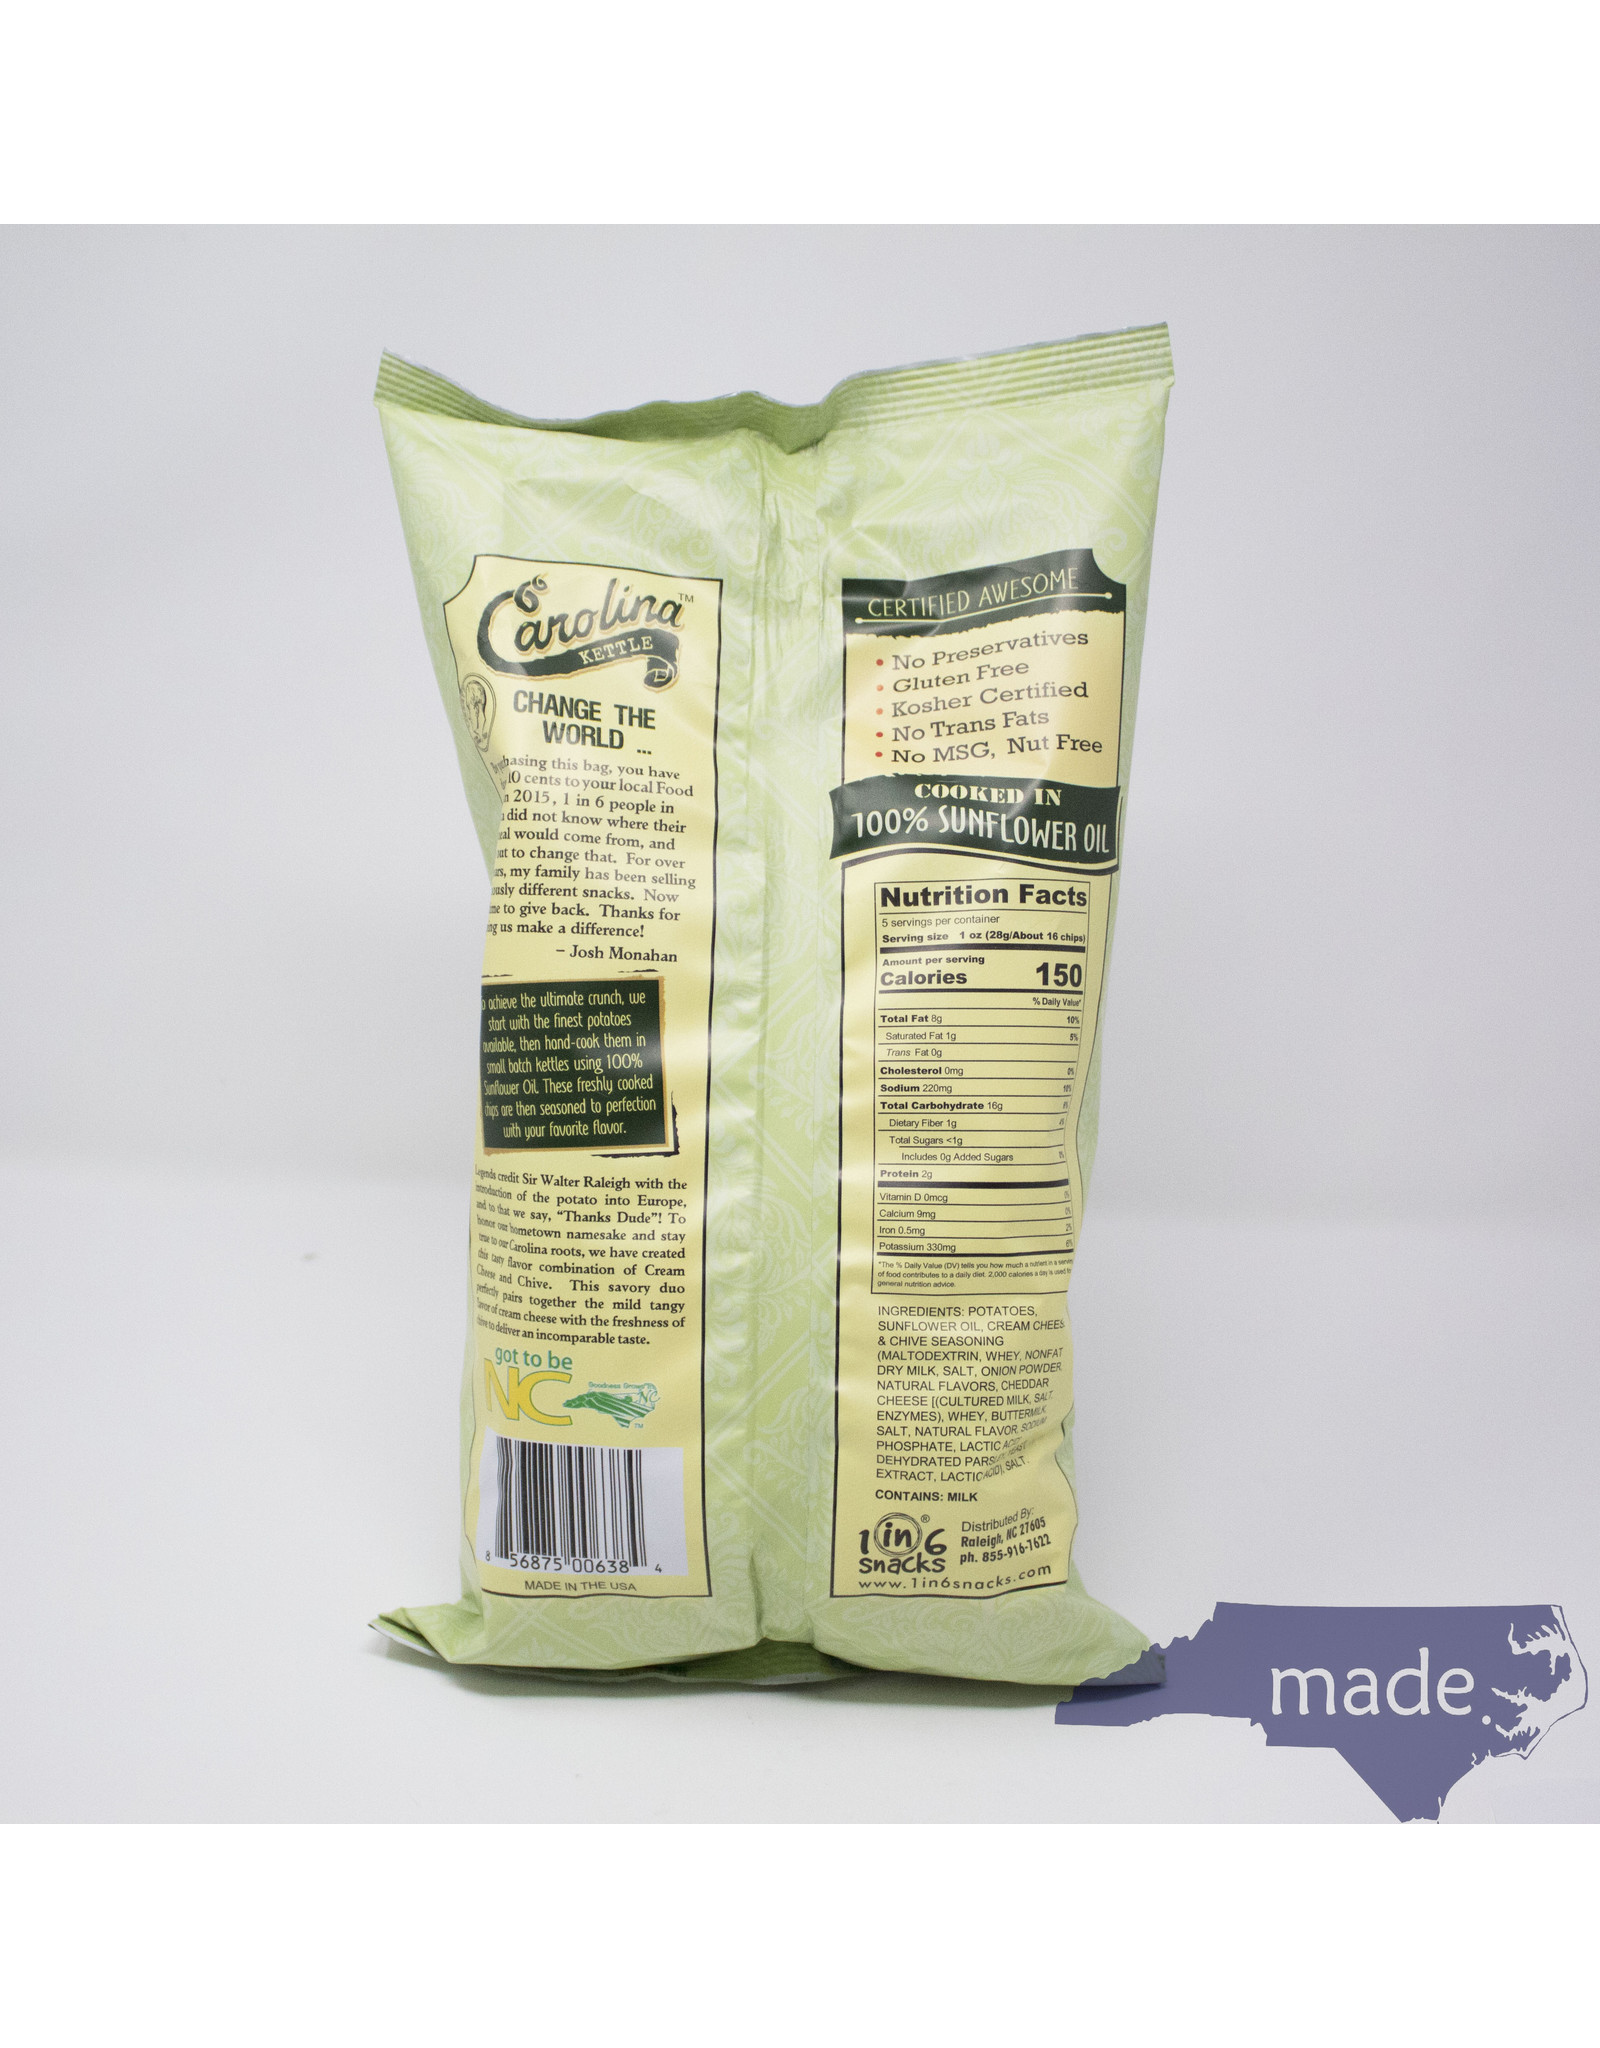 1 in 6 Snacks Cream Cheese & Chive Chips - Carolina Kettle